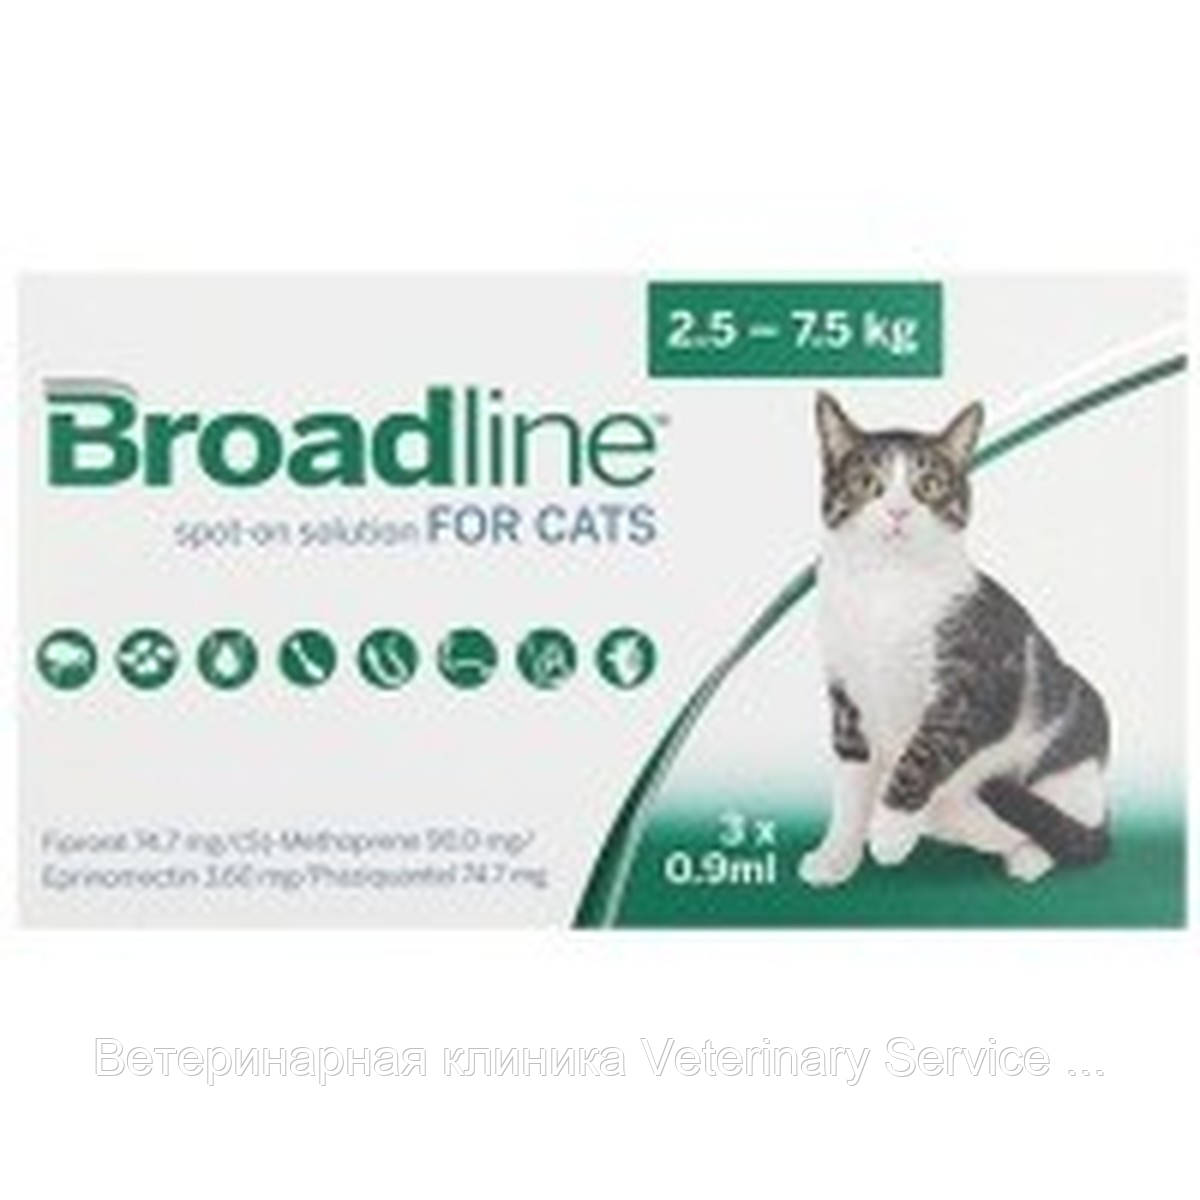 Brodline for cats